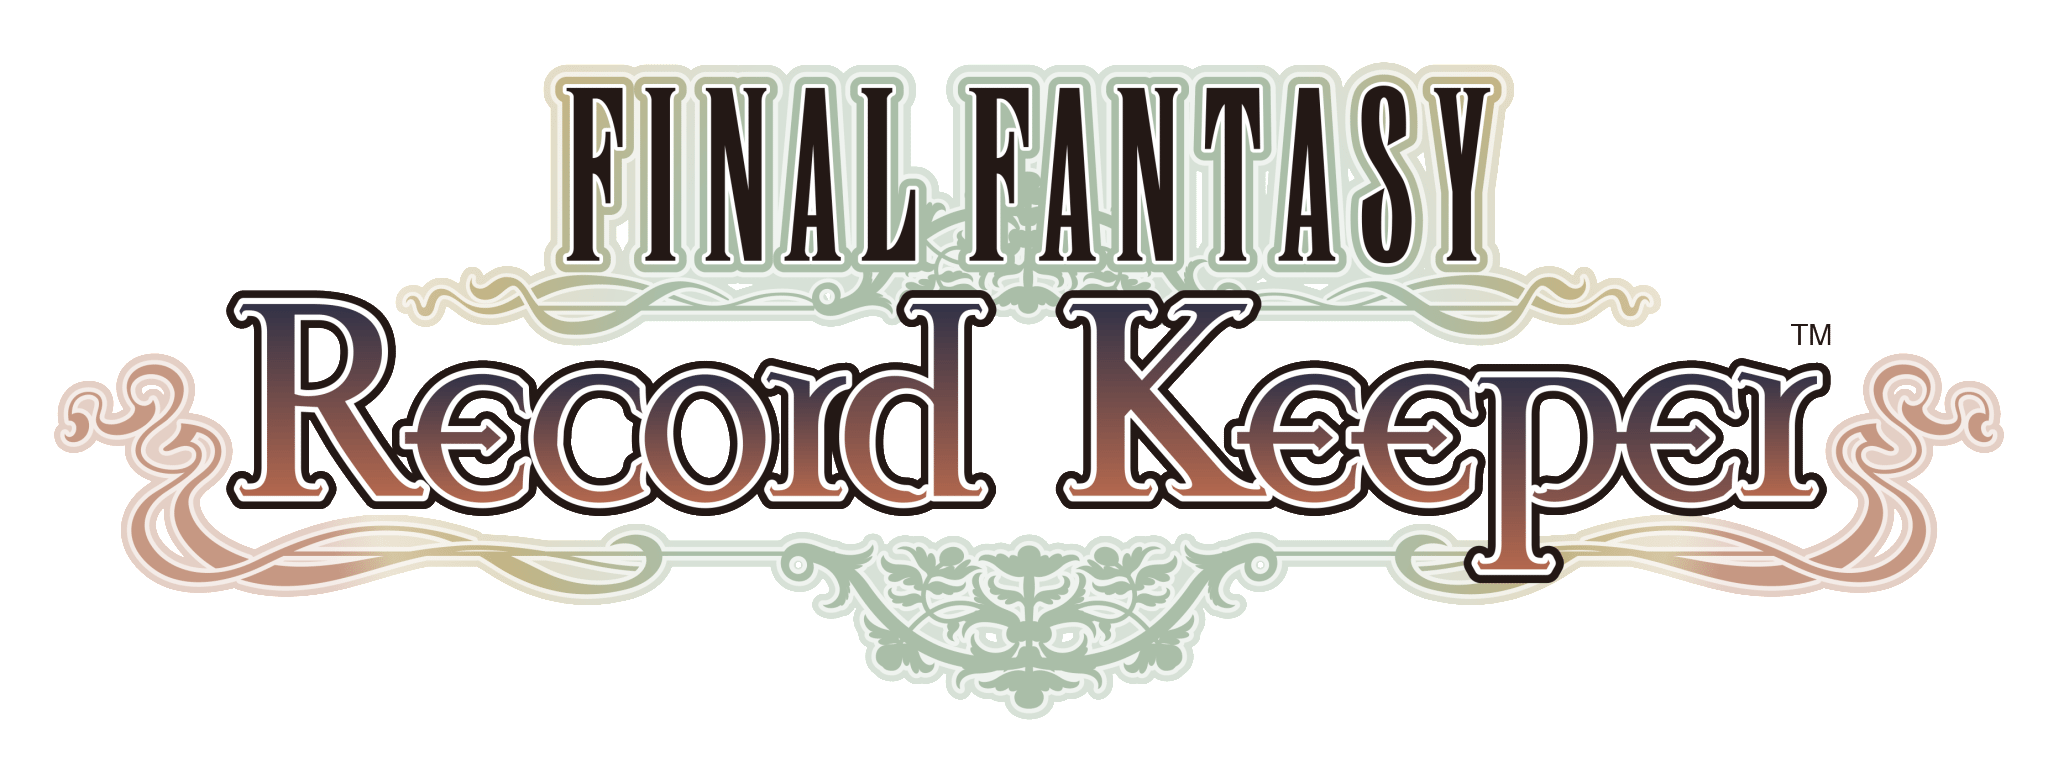 Defend Your Legacy With 'Final Fantasy: Record Keeper'